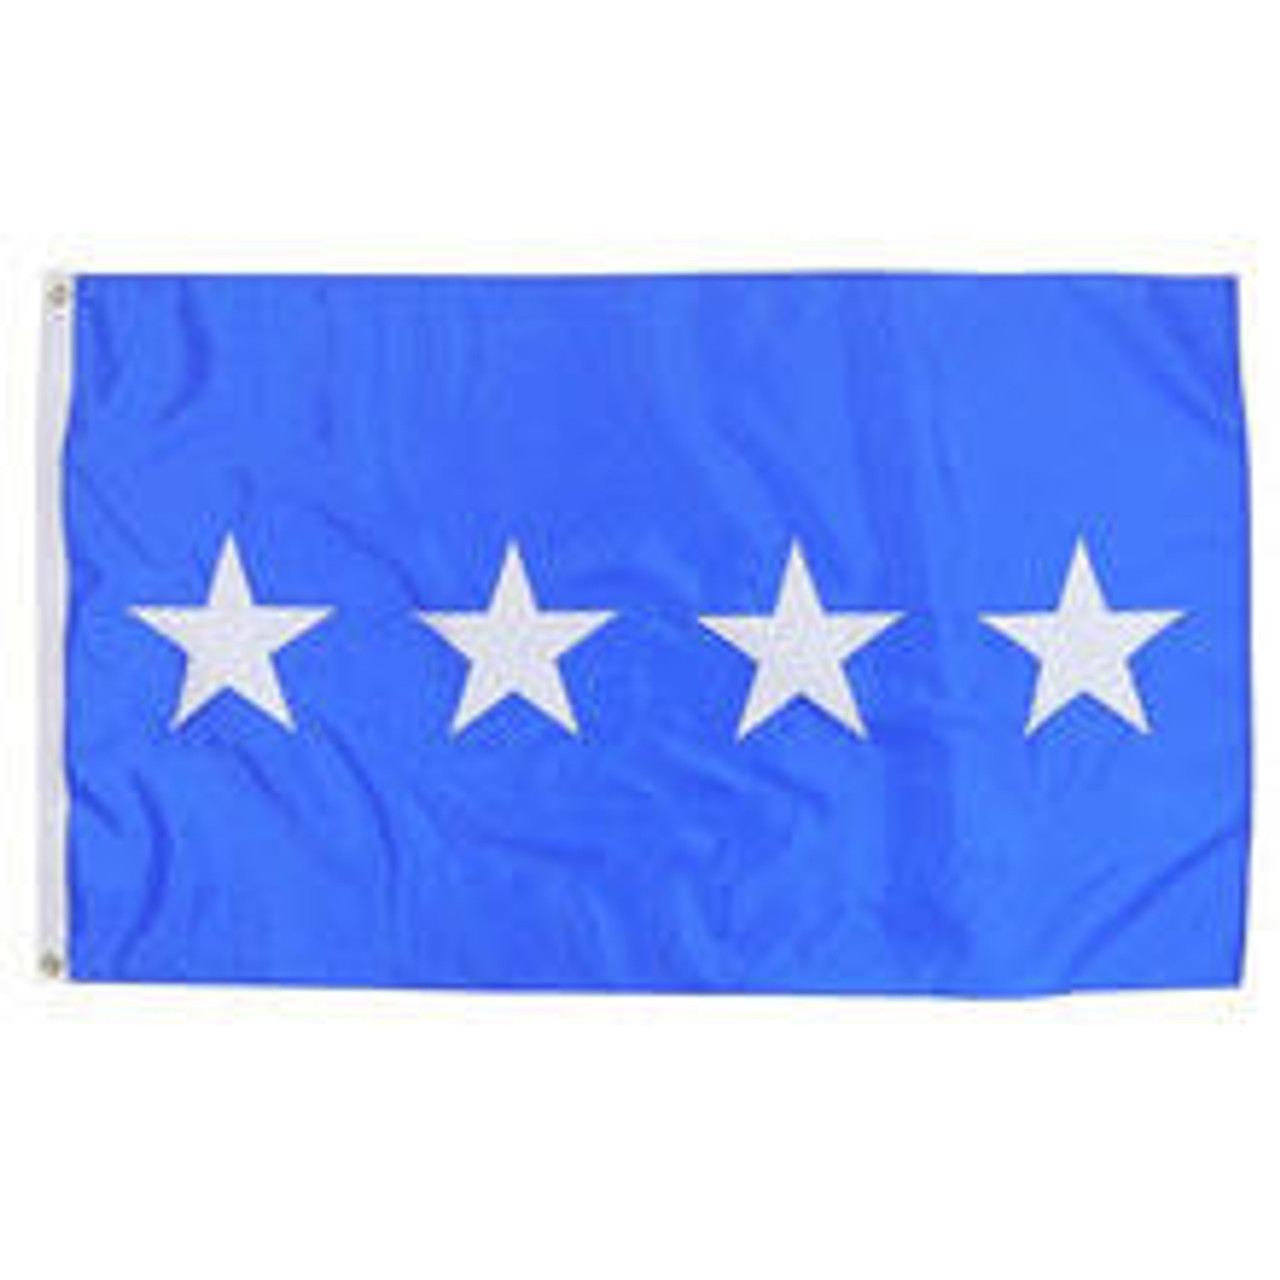 An Army 4 Star Officer Flag made of nylon with lock stitching, polyester canvas heading, and brass grommets. Has a blue background with 4 white starts spaced horizontally and centered vertically.